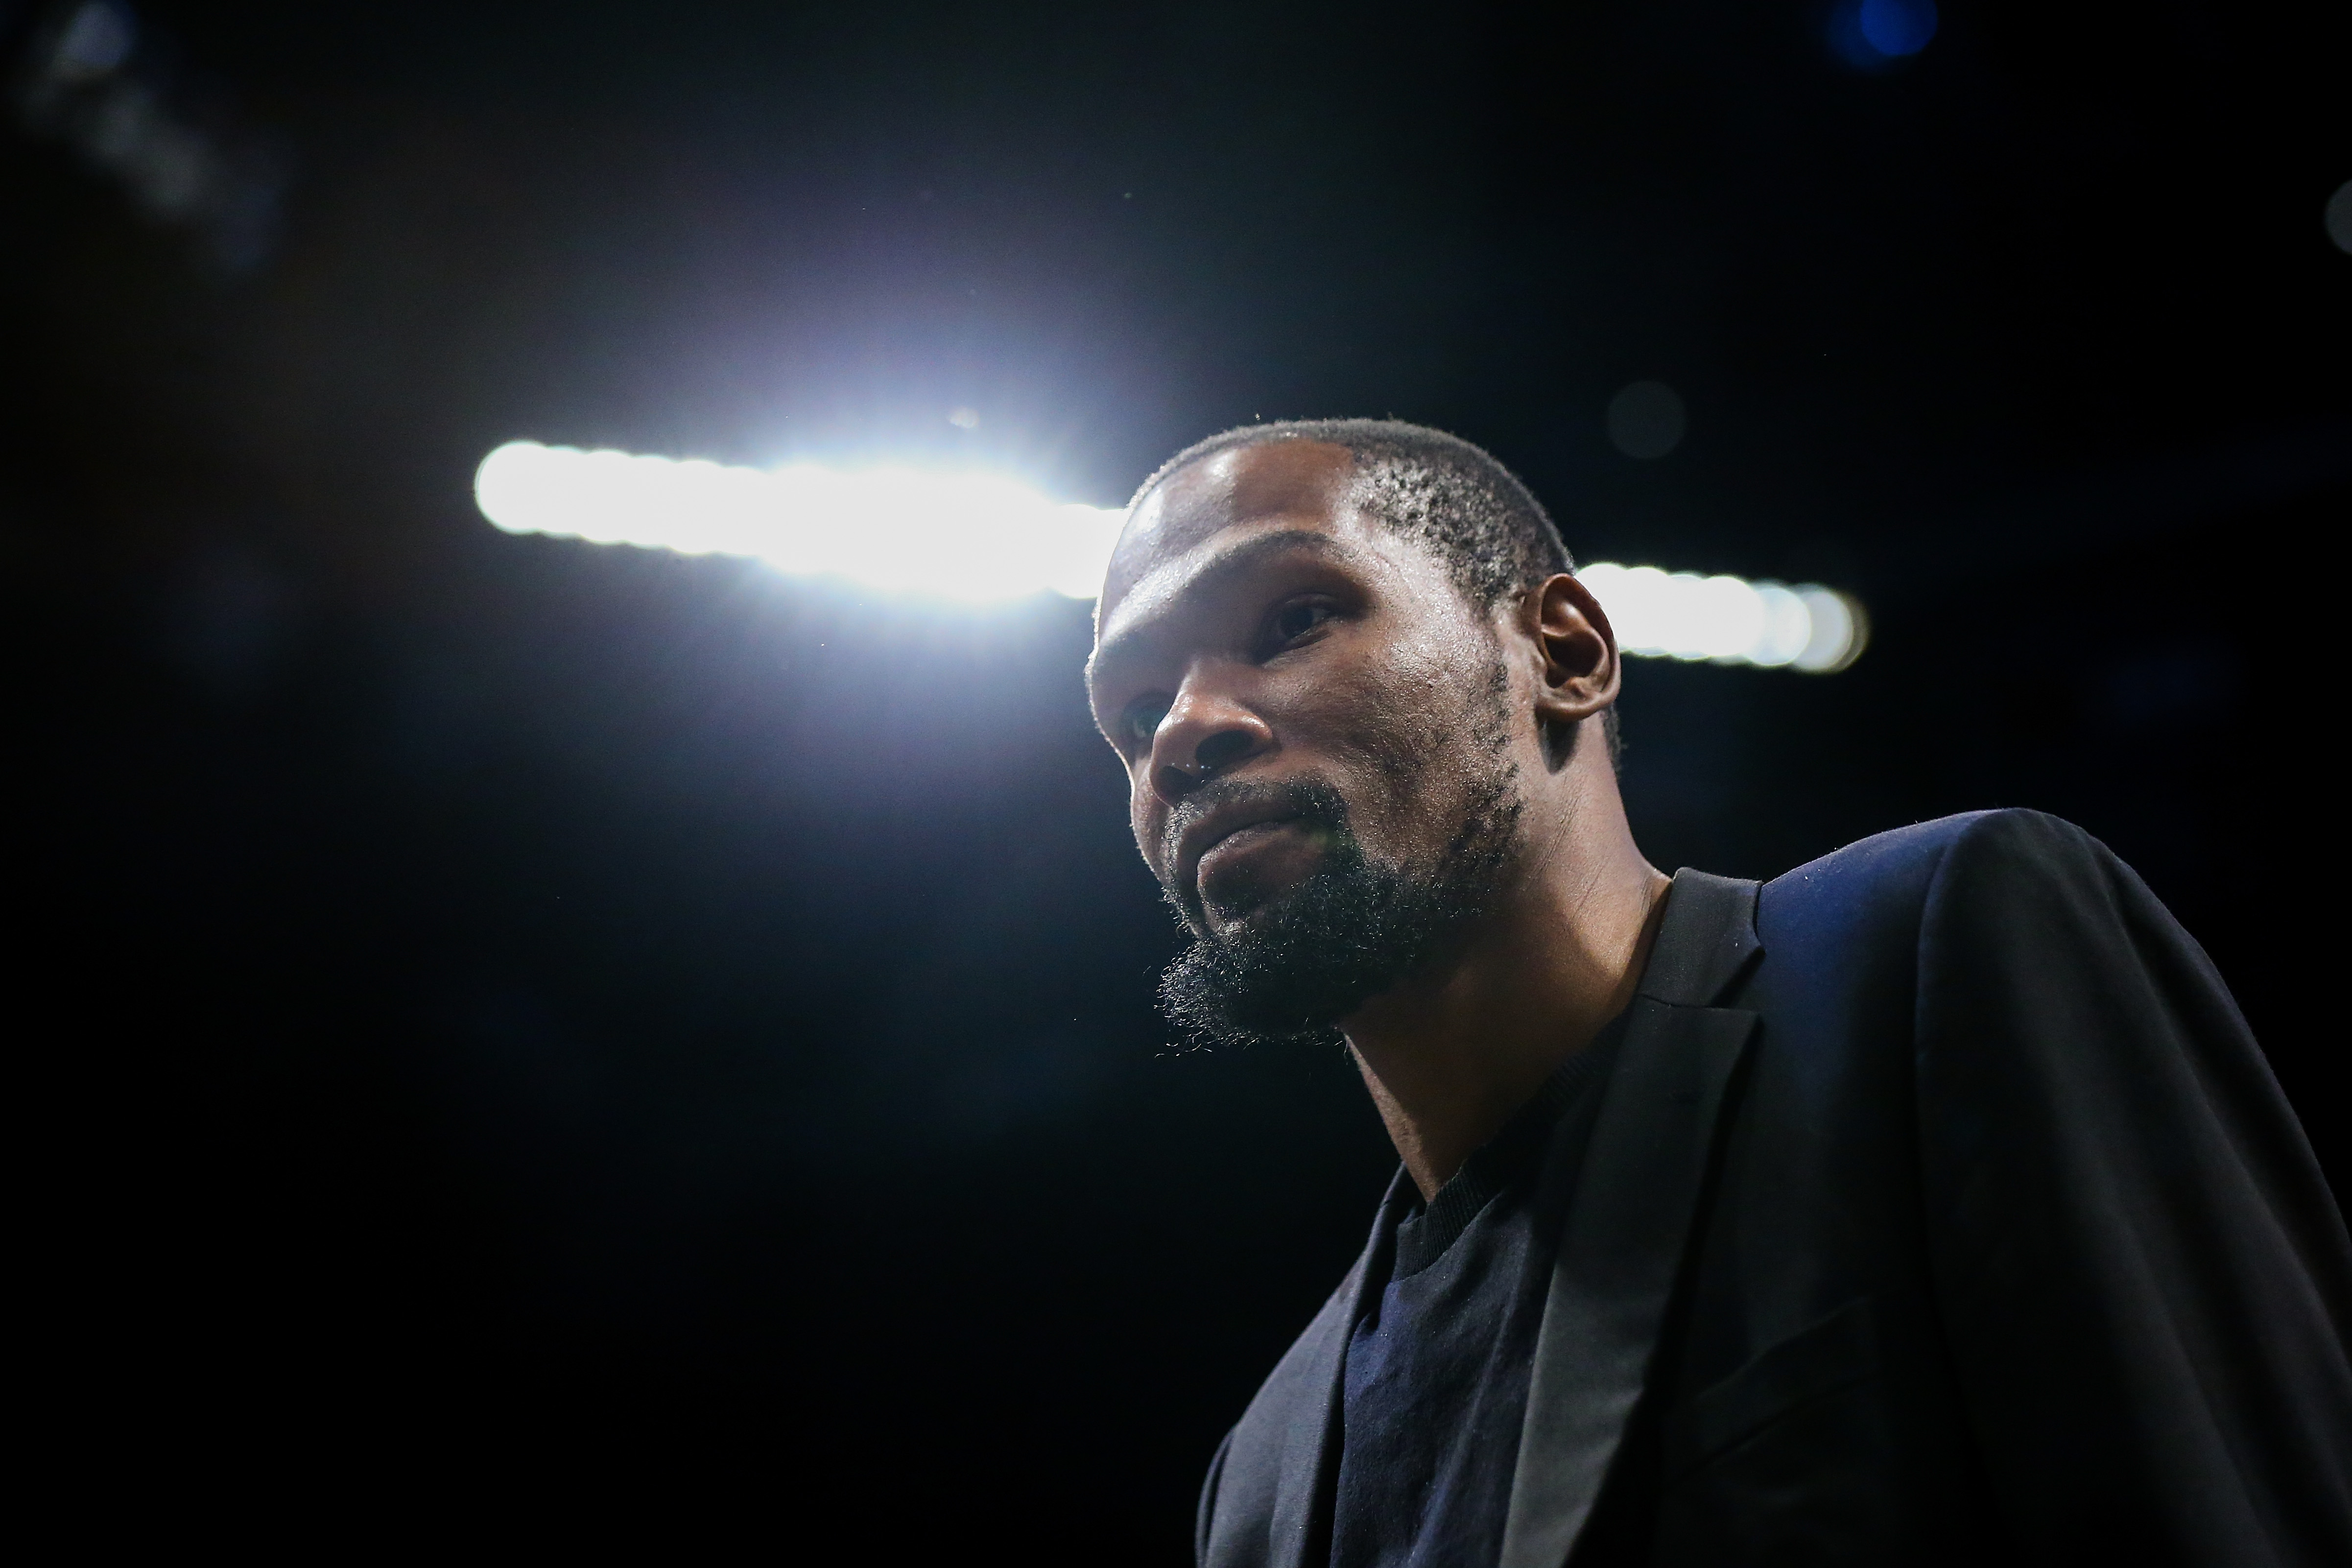 Kevin Durant stunned the NBA world when he joined the Golden State Warriors in July 2016. Durant can thank his father for changing his NBA legacy.